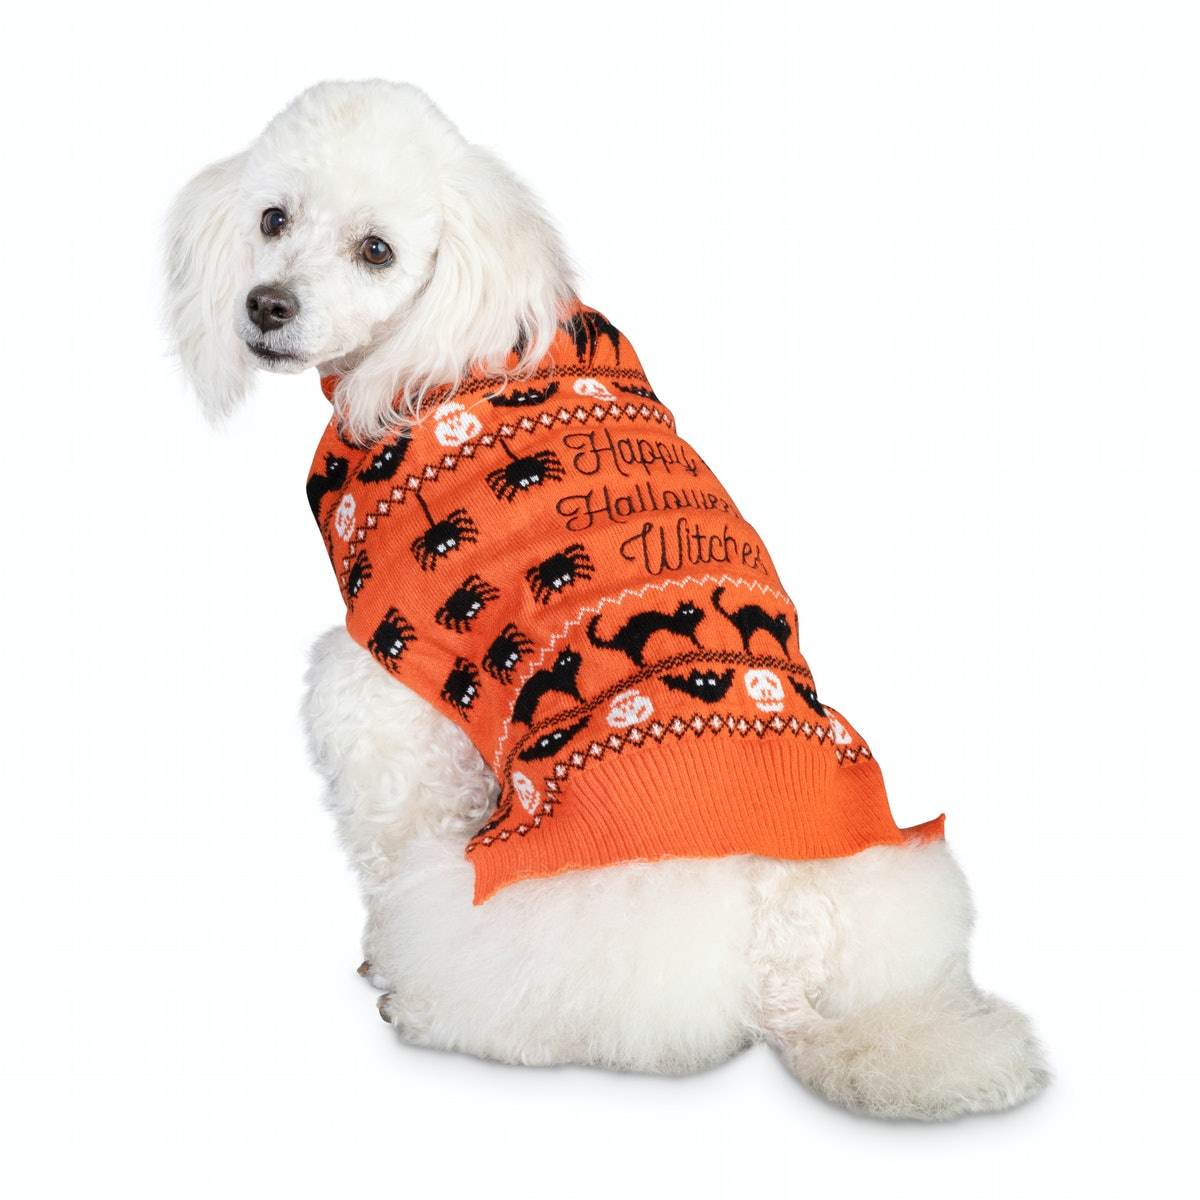 Bootique Wildly Wicked Sweater Dog Costume